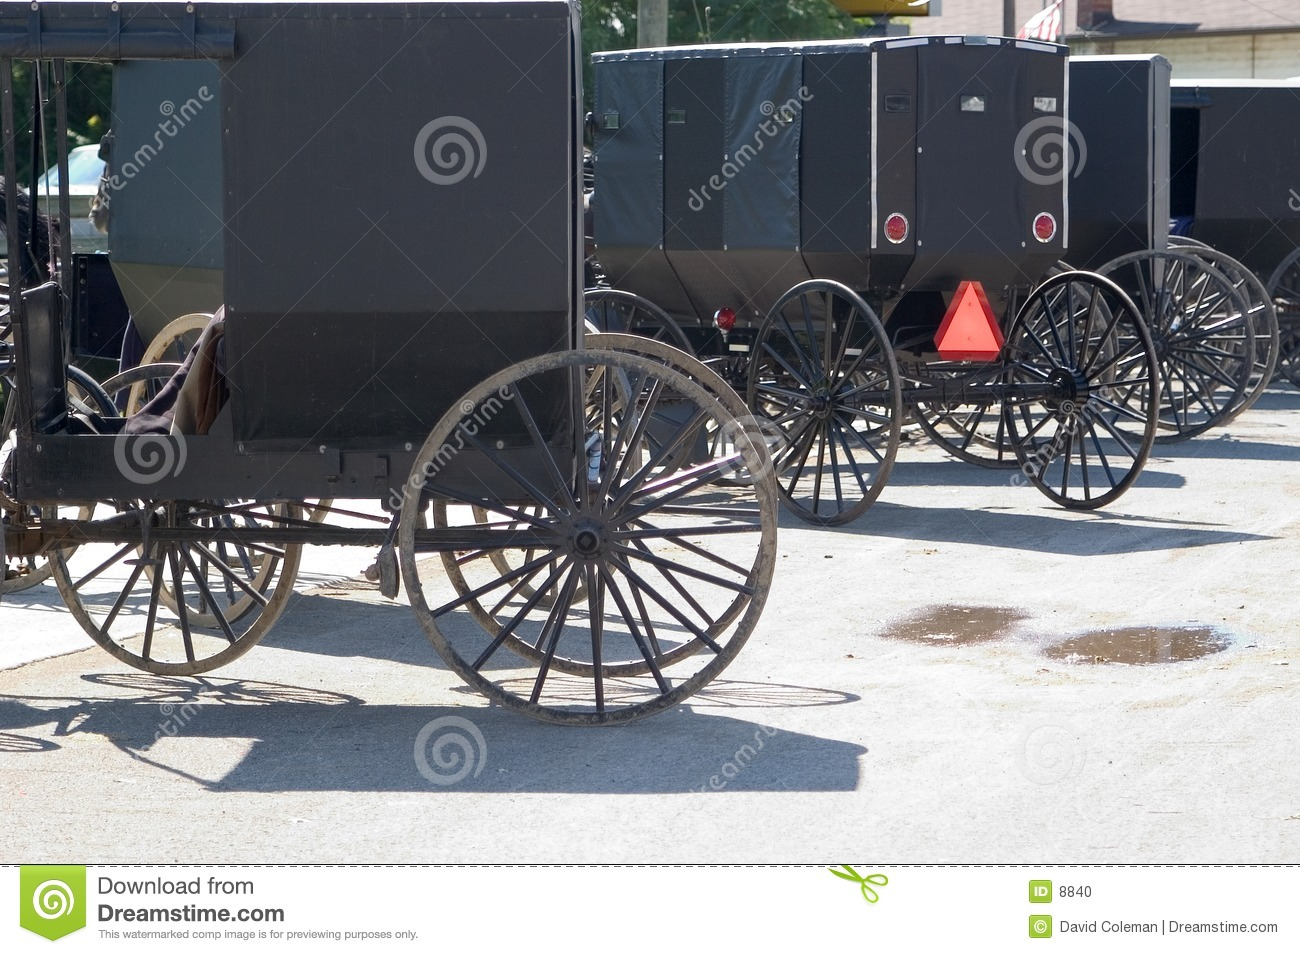 Amish buggies